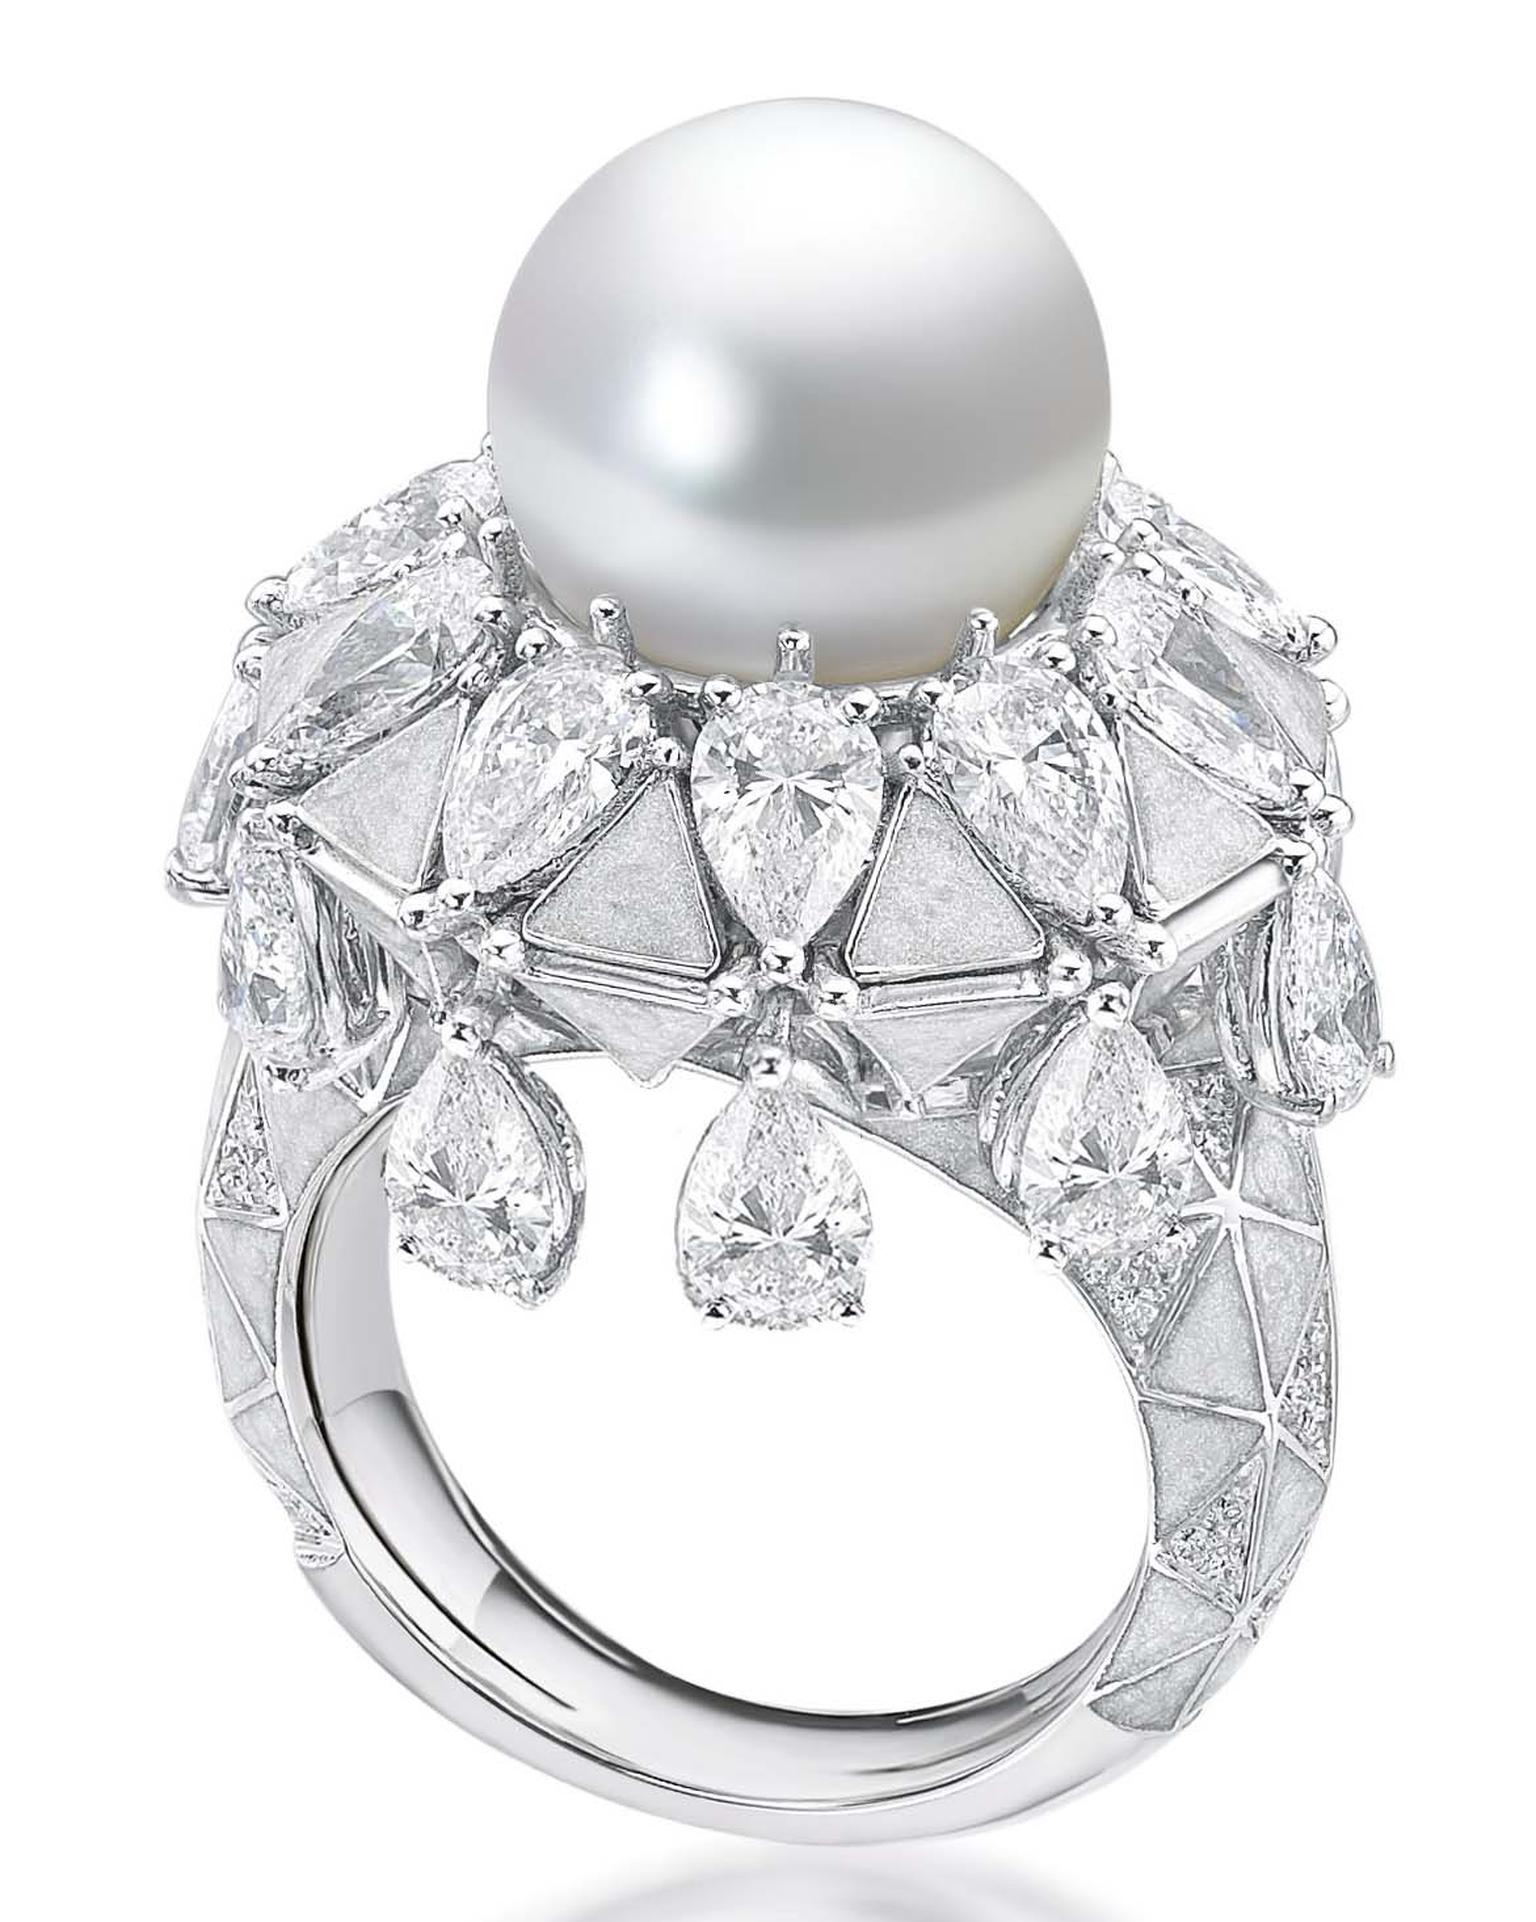 Pearl Ring from Sarah Ho